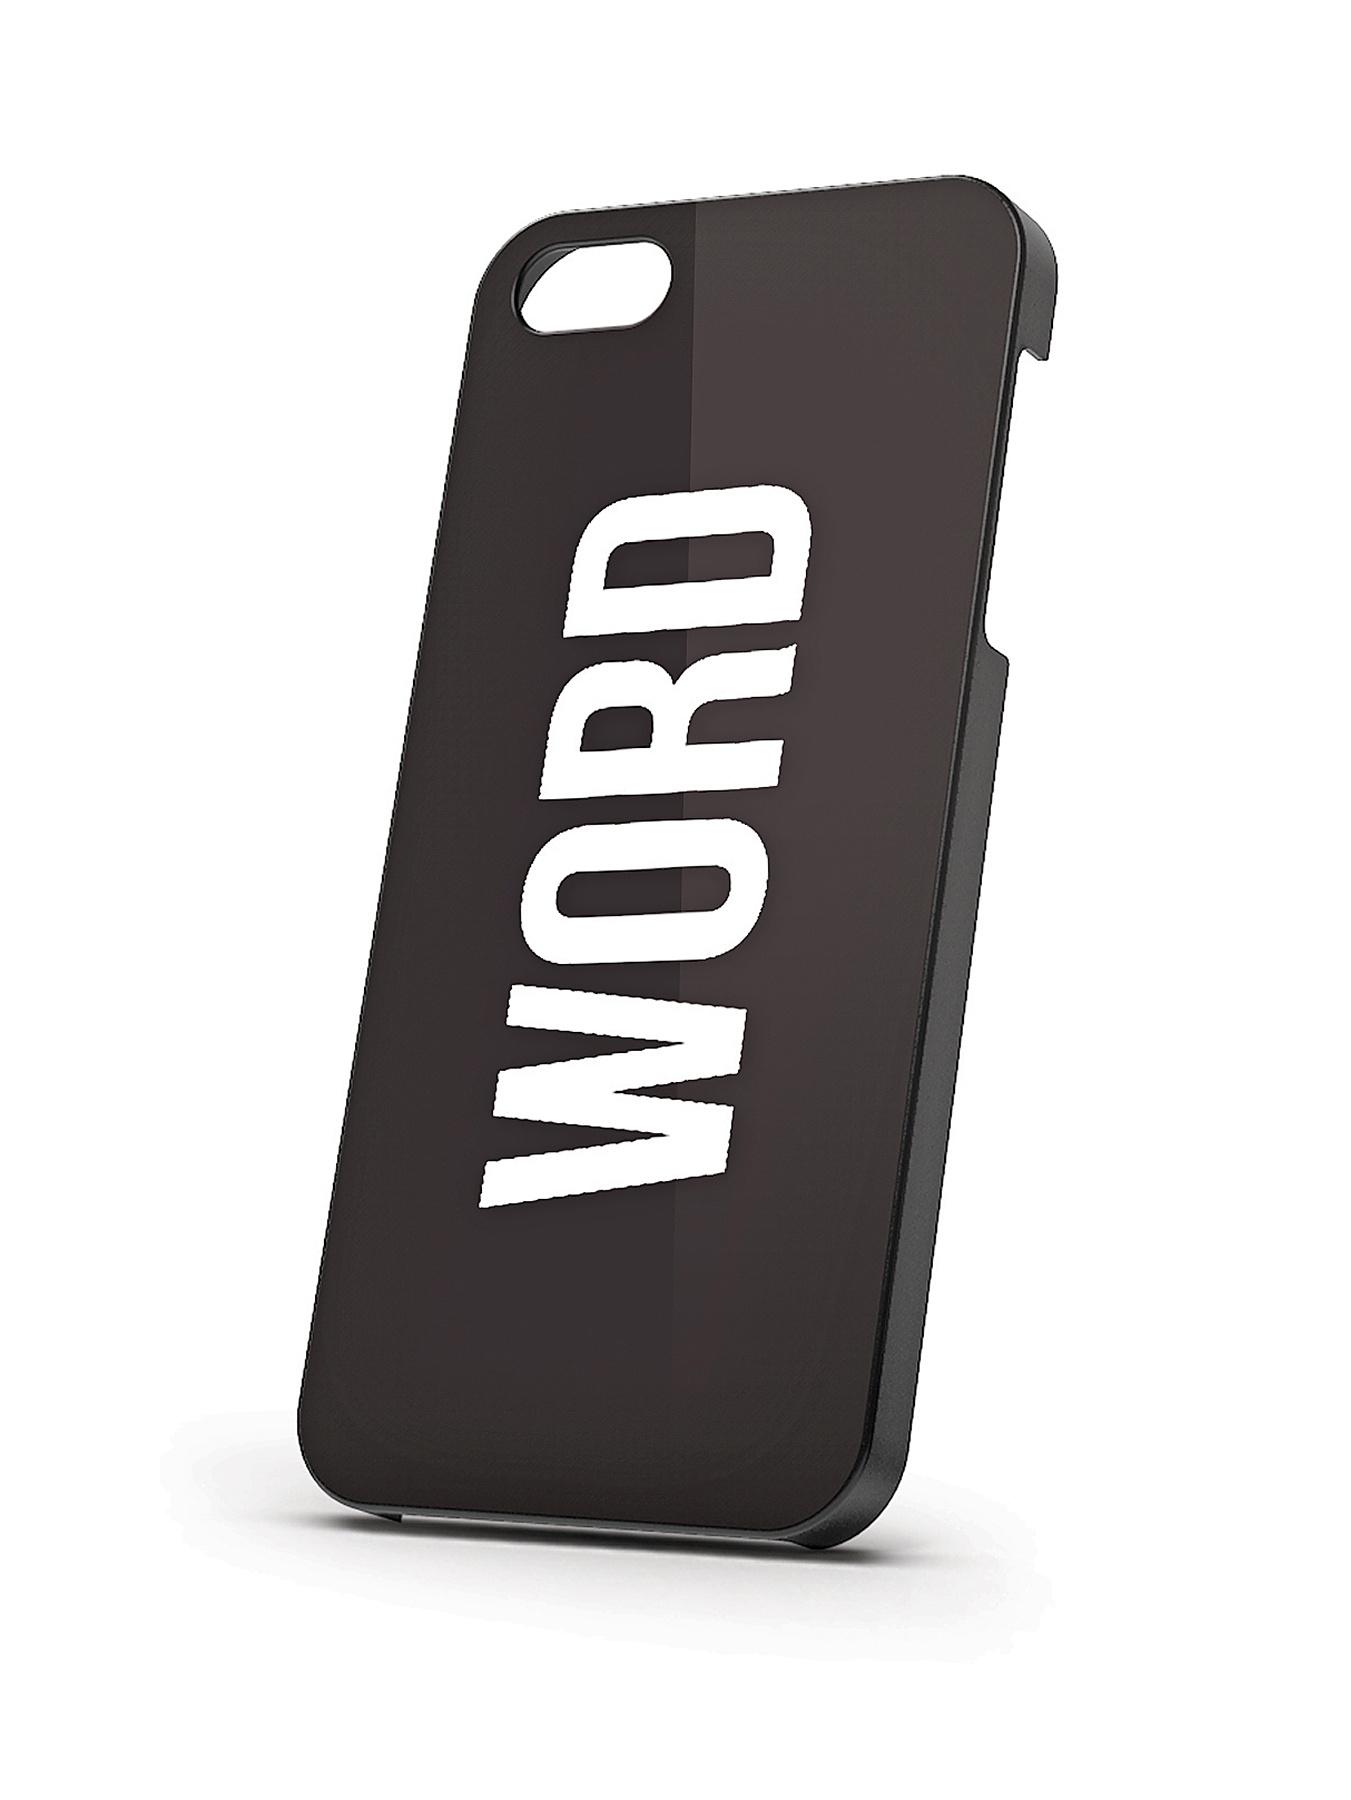 IPhone 5S Word Case at Littlewoods